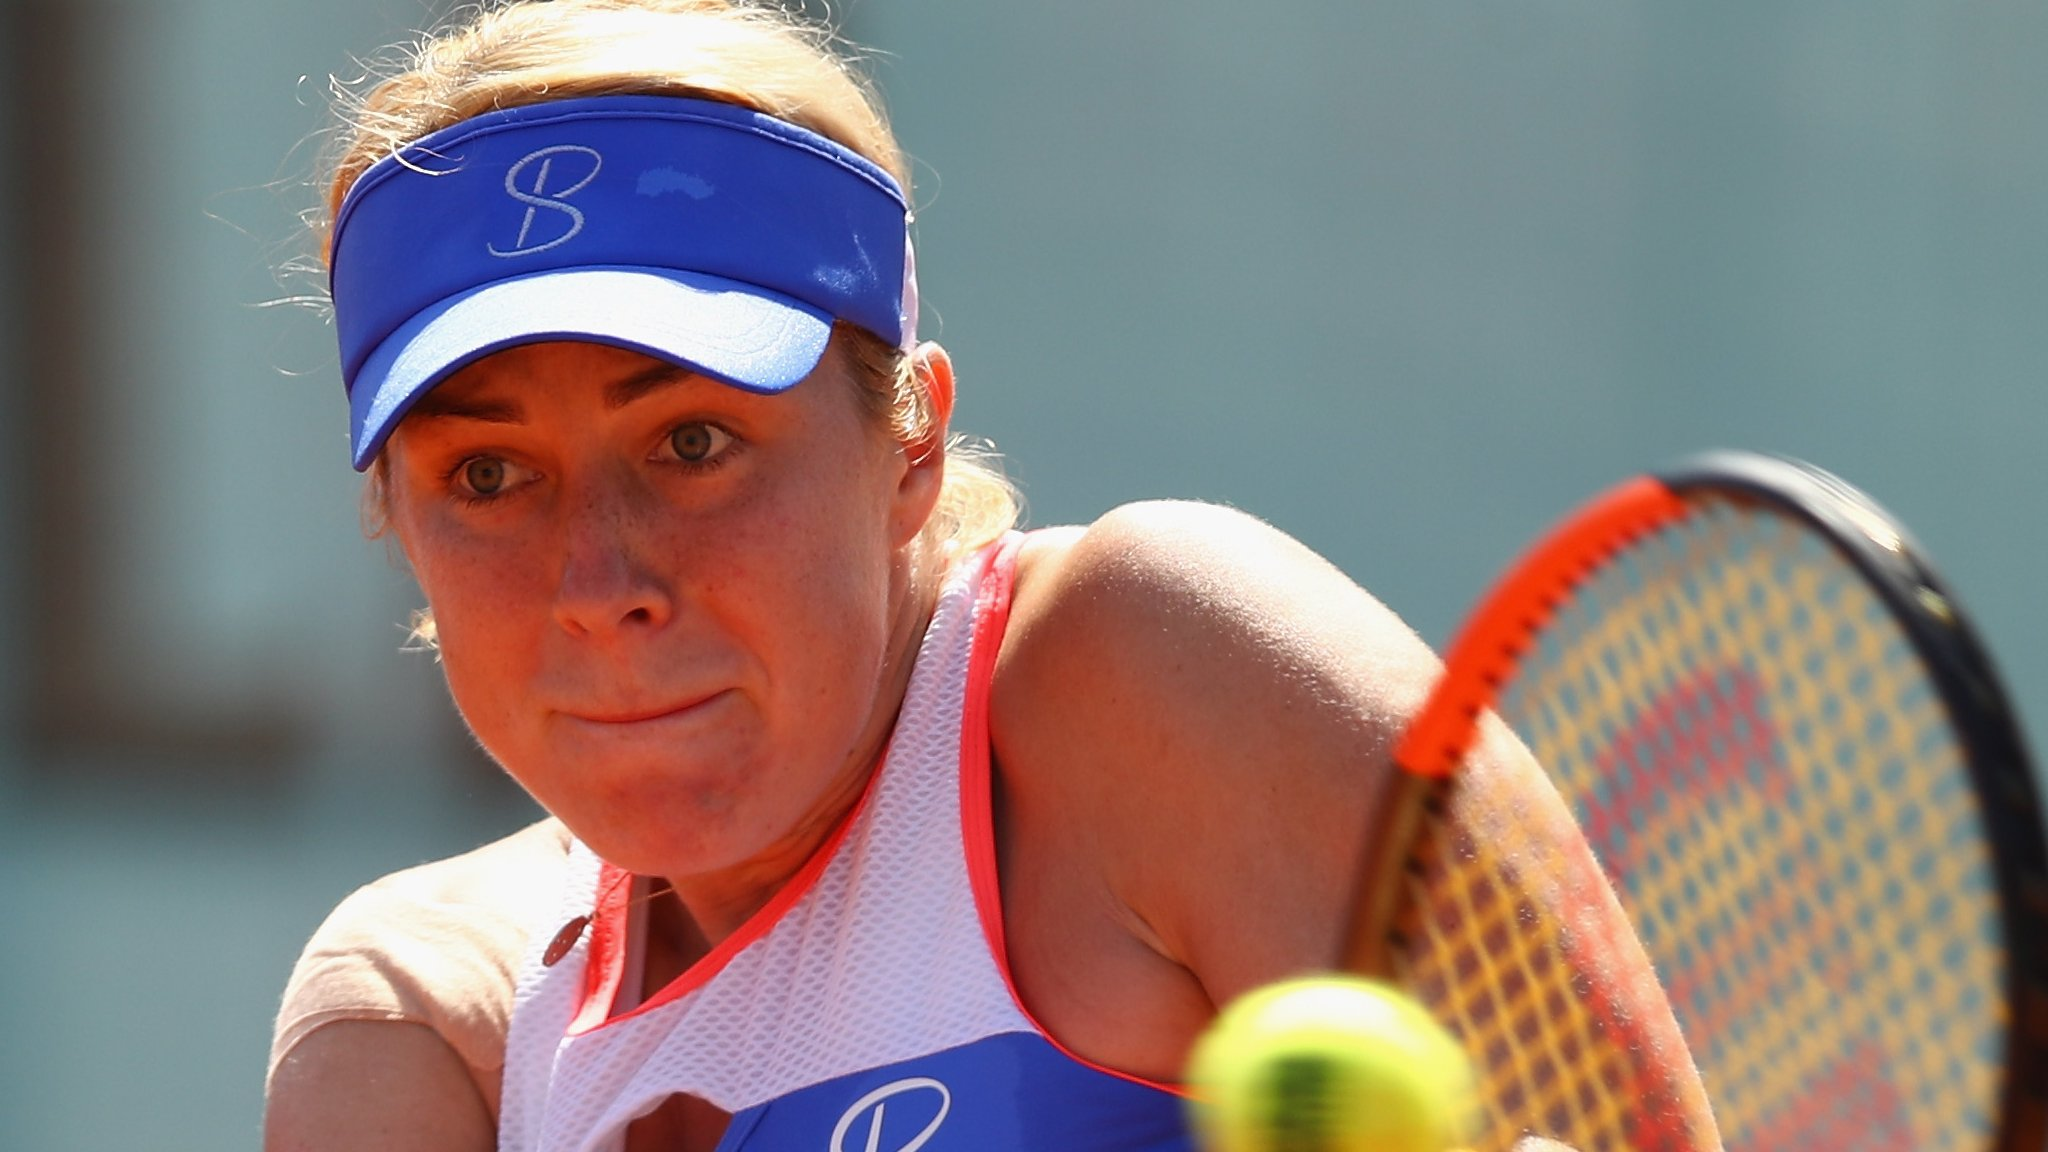 Russia's Pavlyuchenkova wins epic three-and-a-half-hour Strasbourg Open final